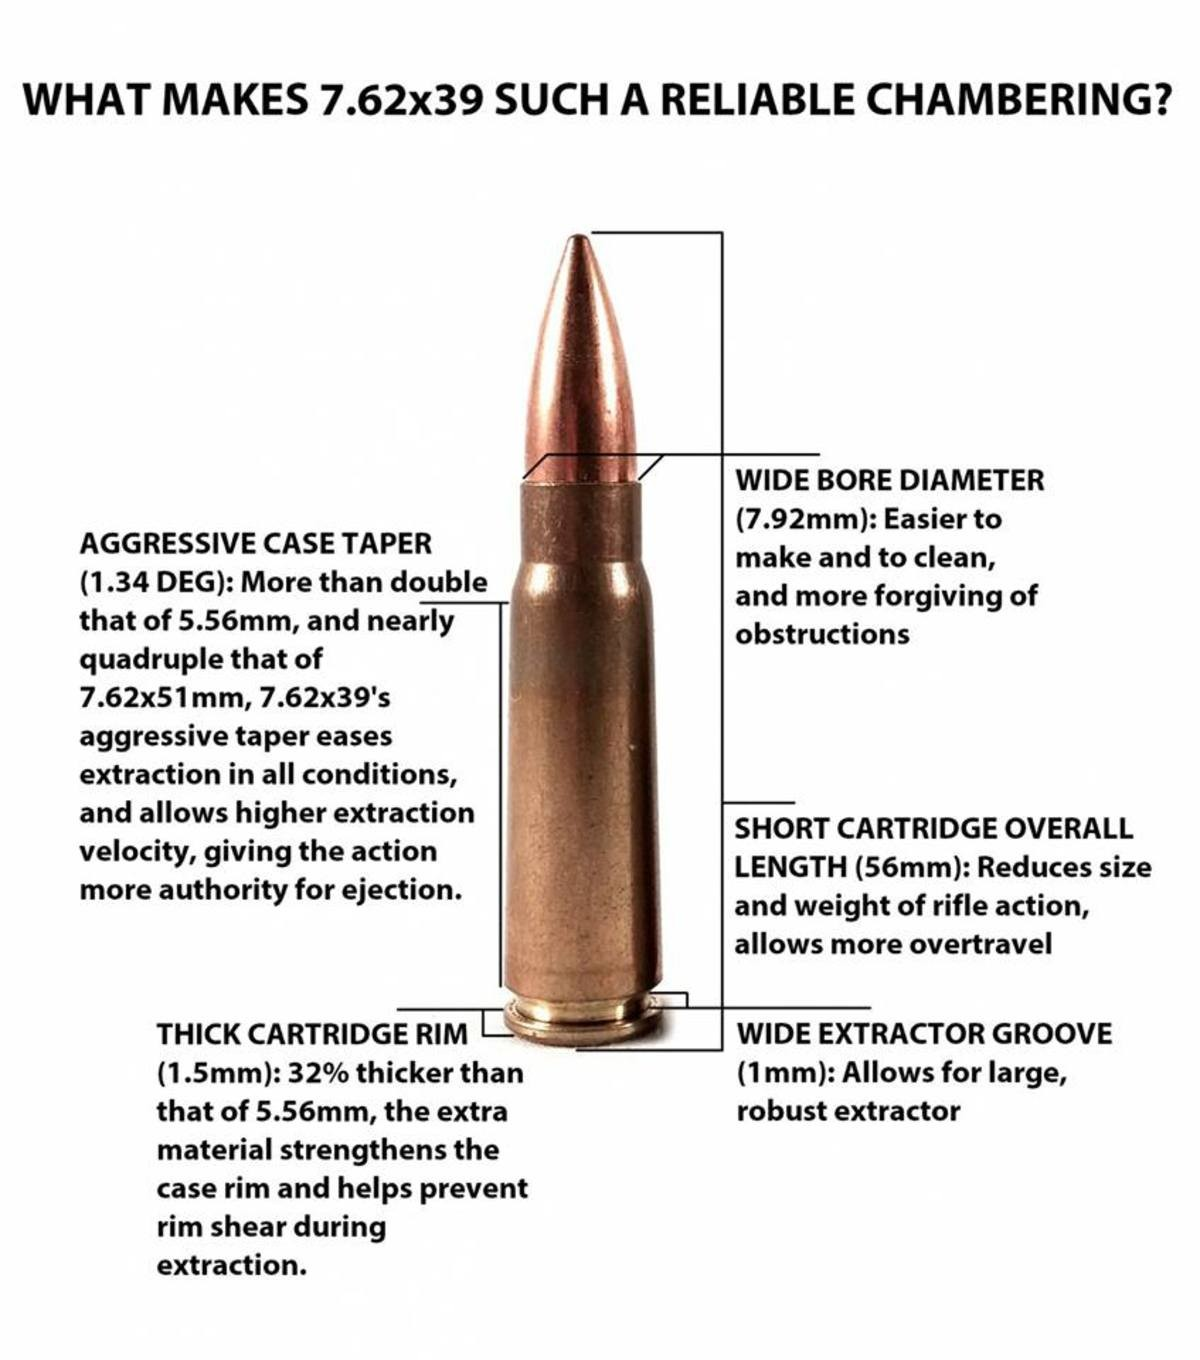 7.62x39mm. . WHAT MAKES 7. 62x39 SUCH A RELIABLE CHAMBERING? WIDE BORE DIAMETER Easier to make and to clean, and more forgiving of obstructions AGGRESSIVE CASE